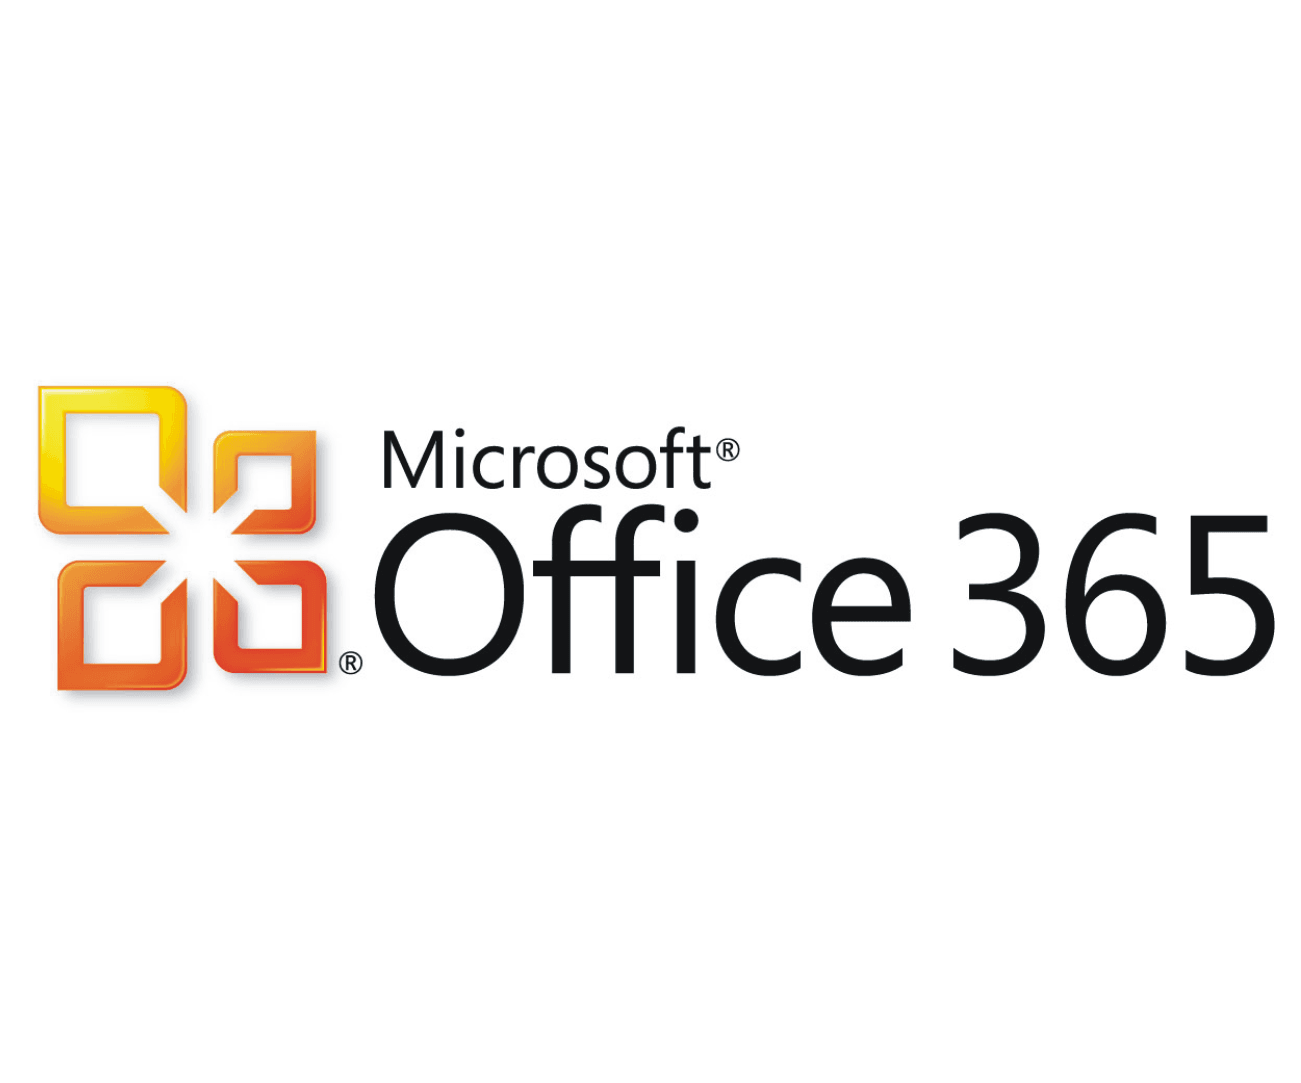 Office 365 Connectivity Issues? Try disabling IPv6 on your network